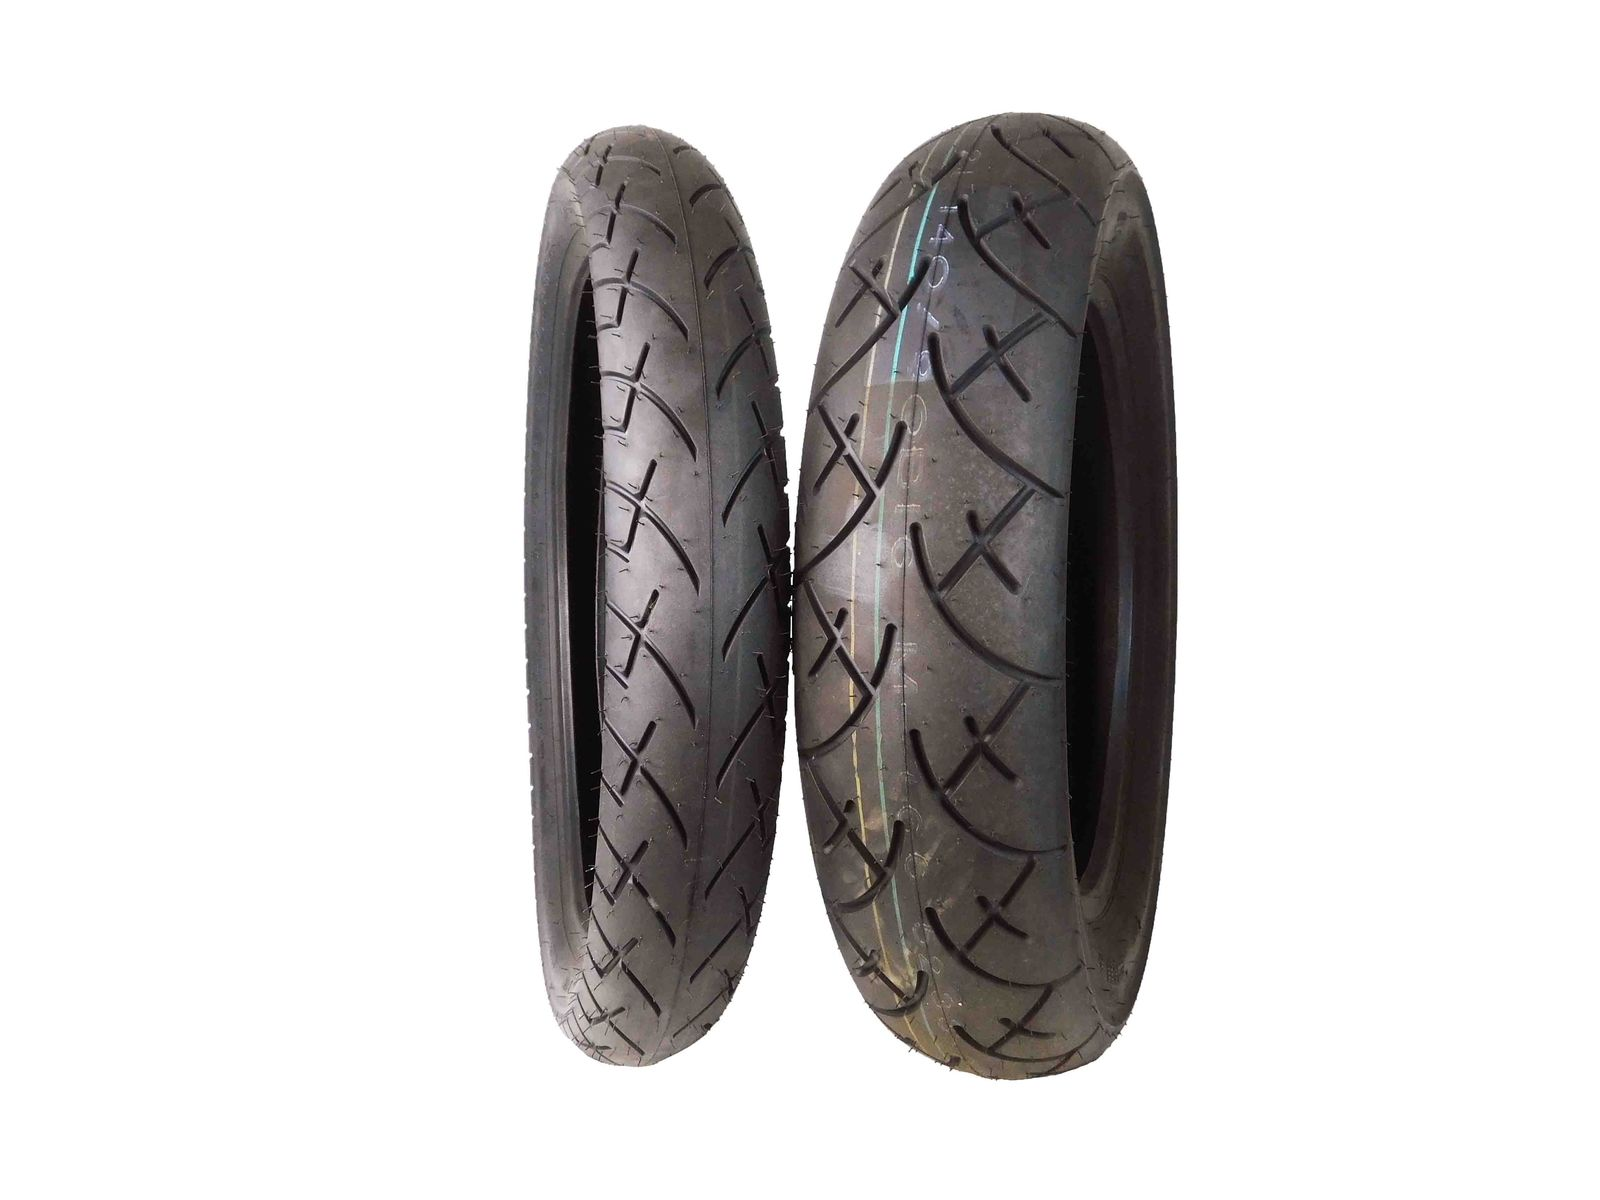 Full-Bore-100-90-19-Front-140-90-16-Rear-Set-Cruiser-Motorcycle-Tires-image-1